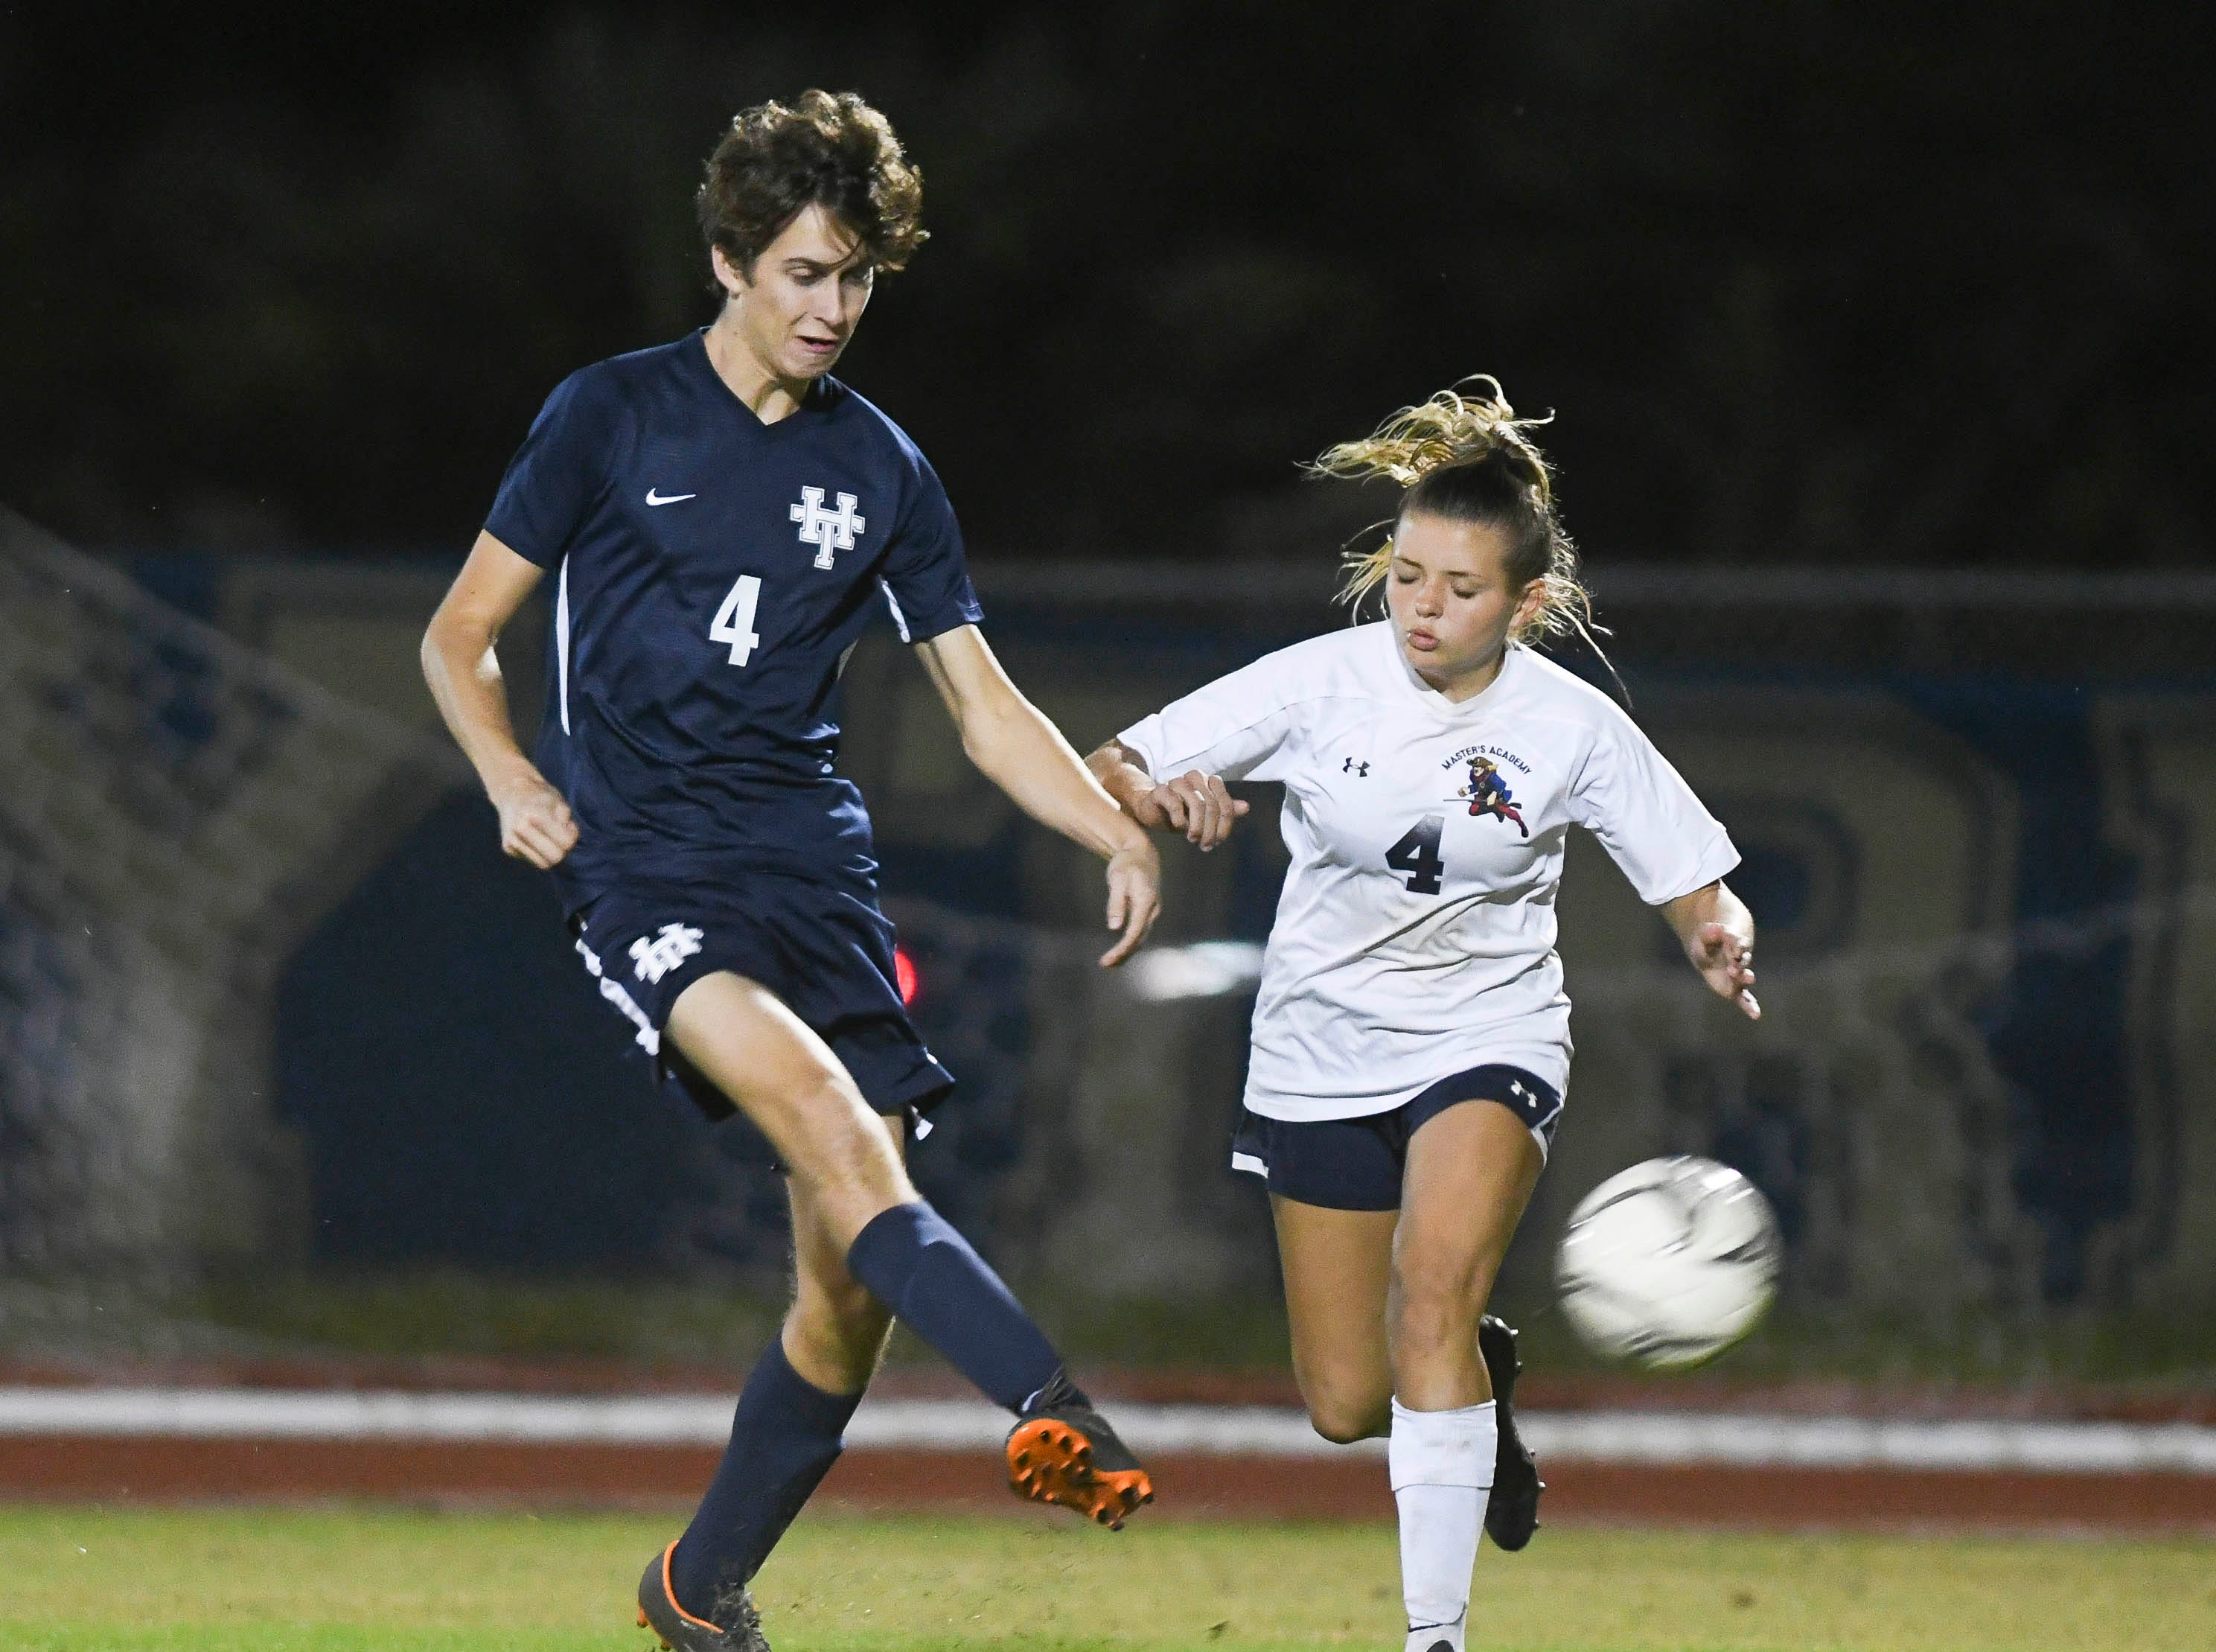 Holy Trinity's Charlie Woods is challenged by Sidney Rohm of Master's Academy during Tuesday's game.